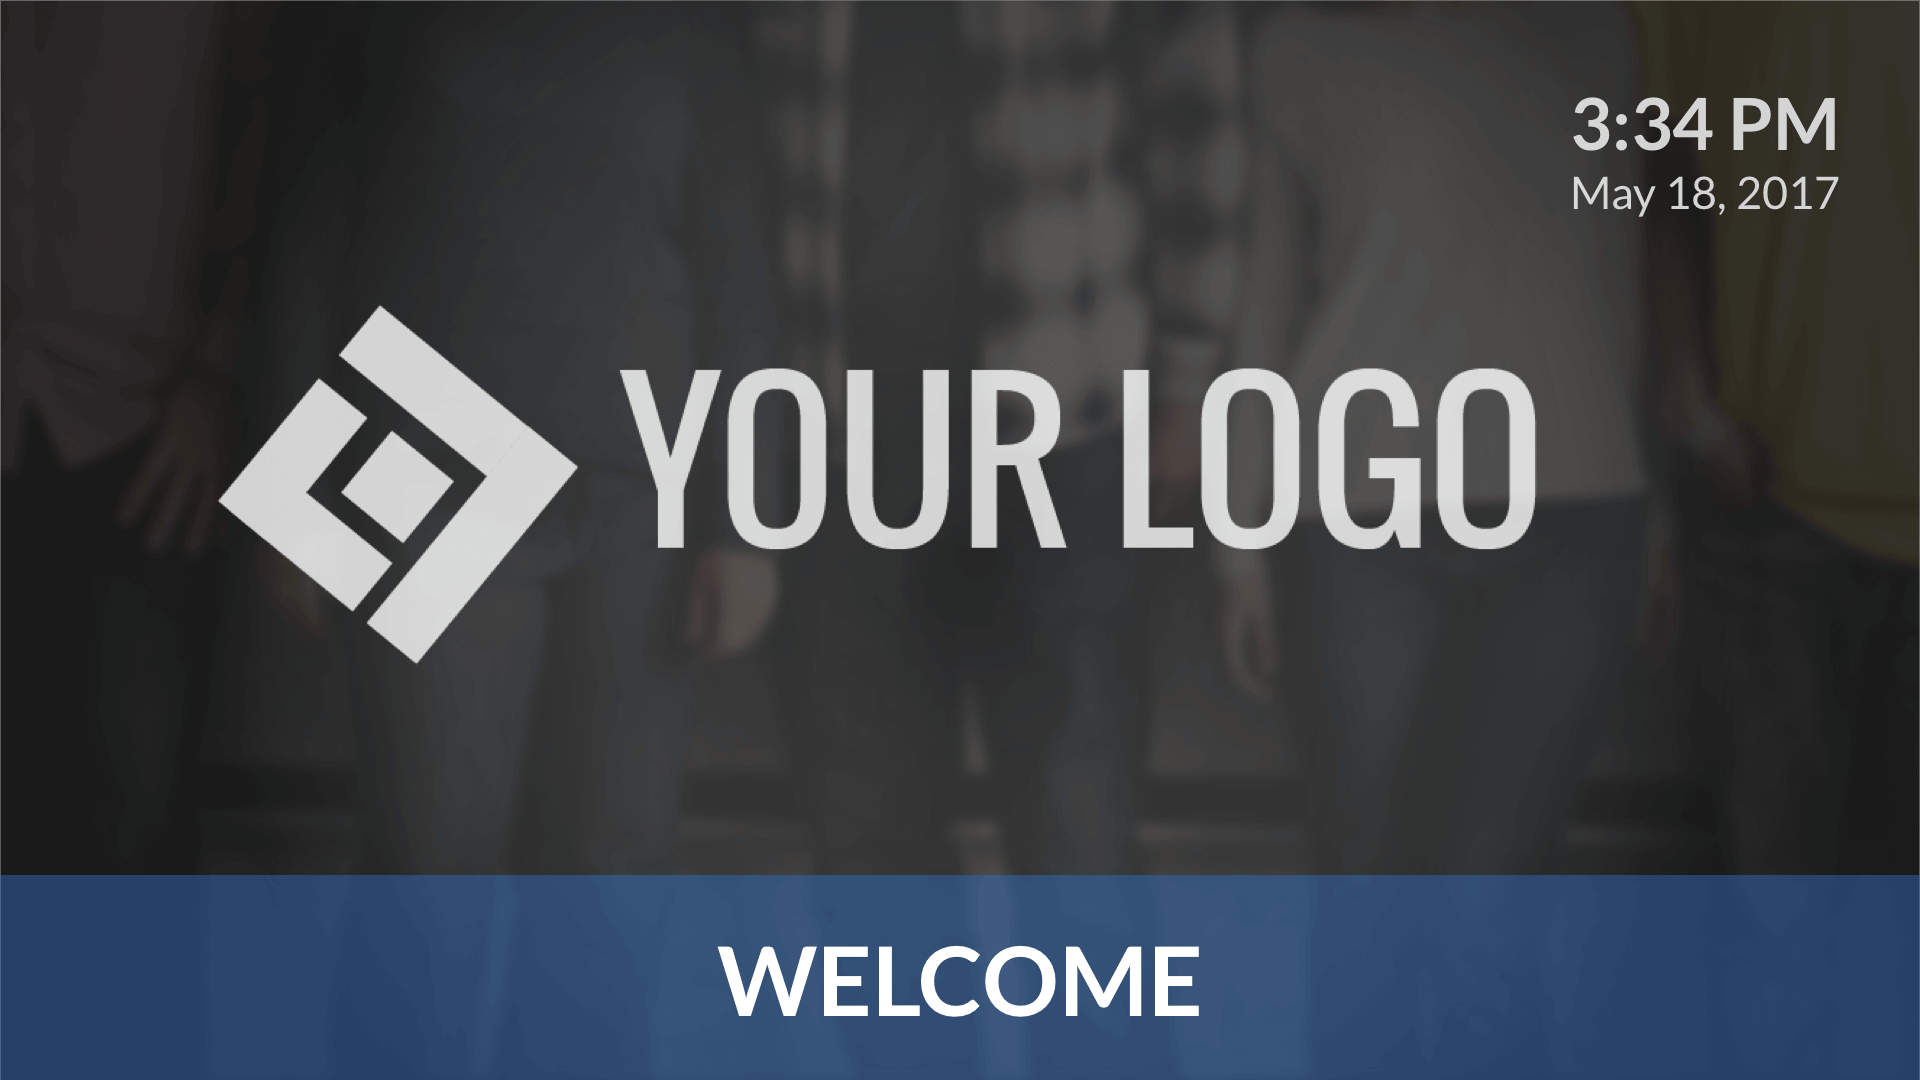 digital-signage-template-welcome-sign